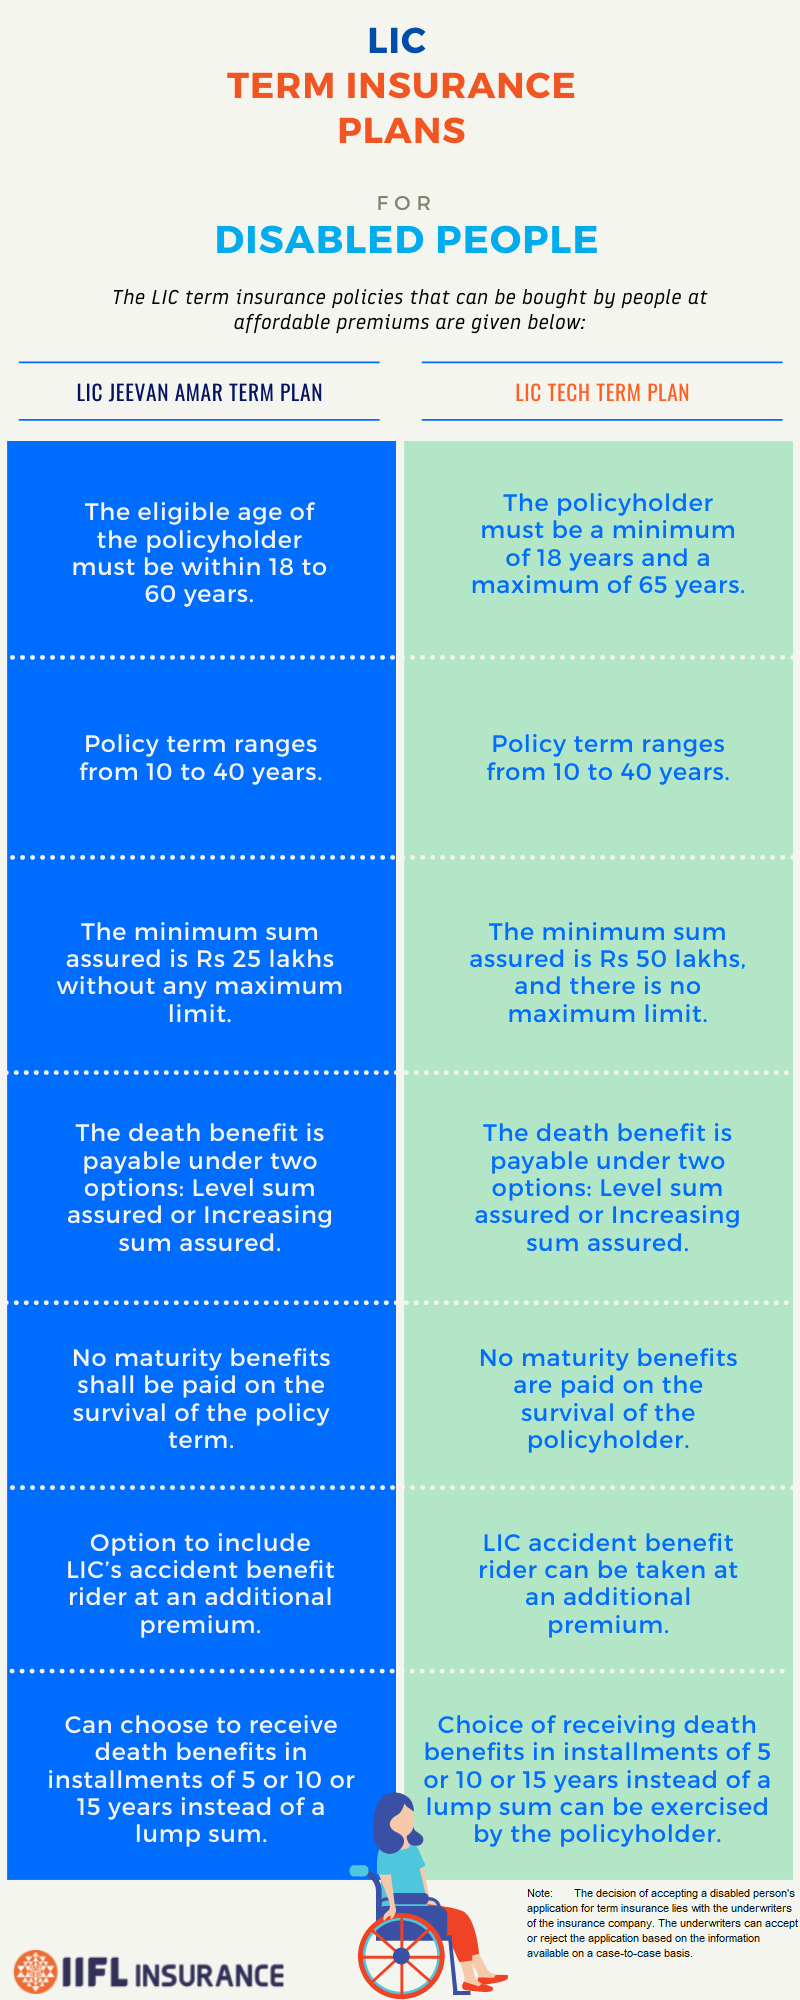 LIC Term Insurance for Disabled Peoples